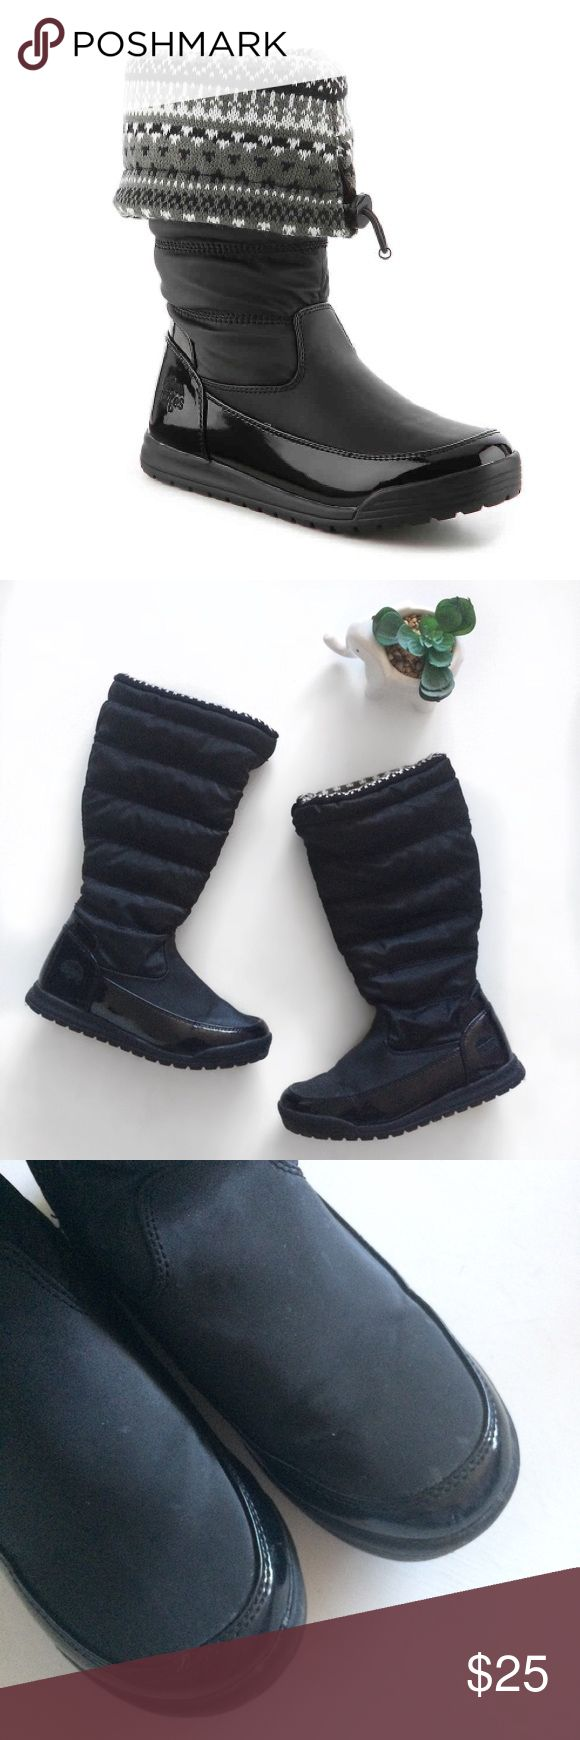 Totes Caroline Black Snow Boots Super adorable foldable snow boots. Wear em high on really snowy days or folded over on those light winter days. Size 6. Good condition, most of wear is on insoles. Minor marks on outside from snow, please see photos. No box. Totes Shoes Winter & Rain Boots